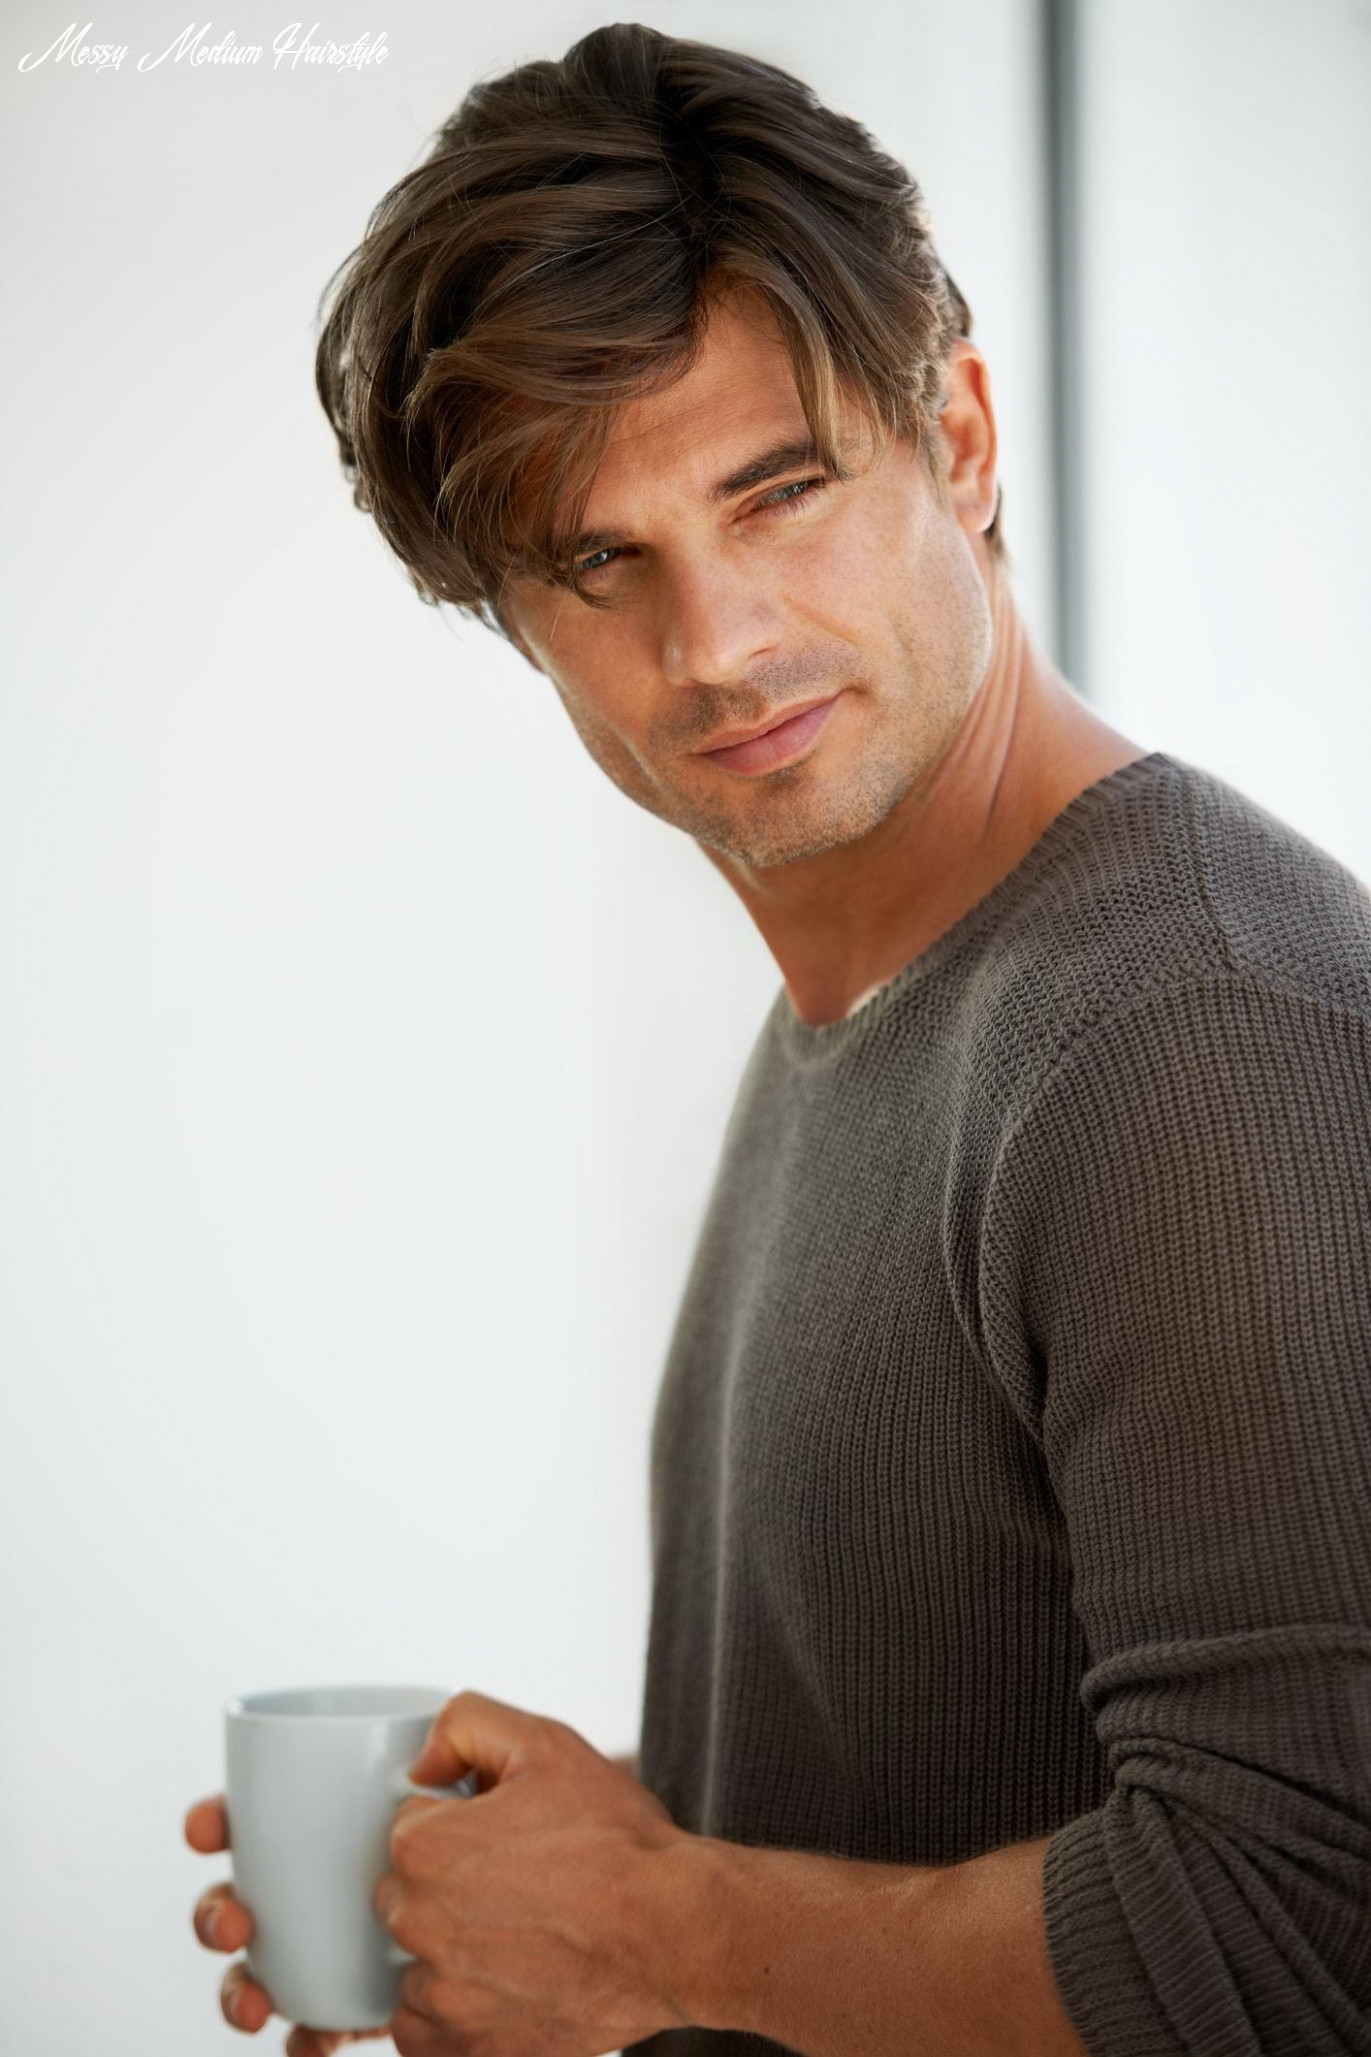 Messy hairstyles for men in 12 | all things hair us messy medium hairstyle